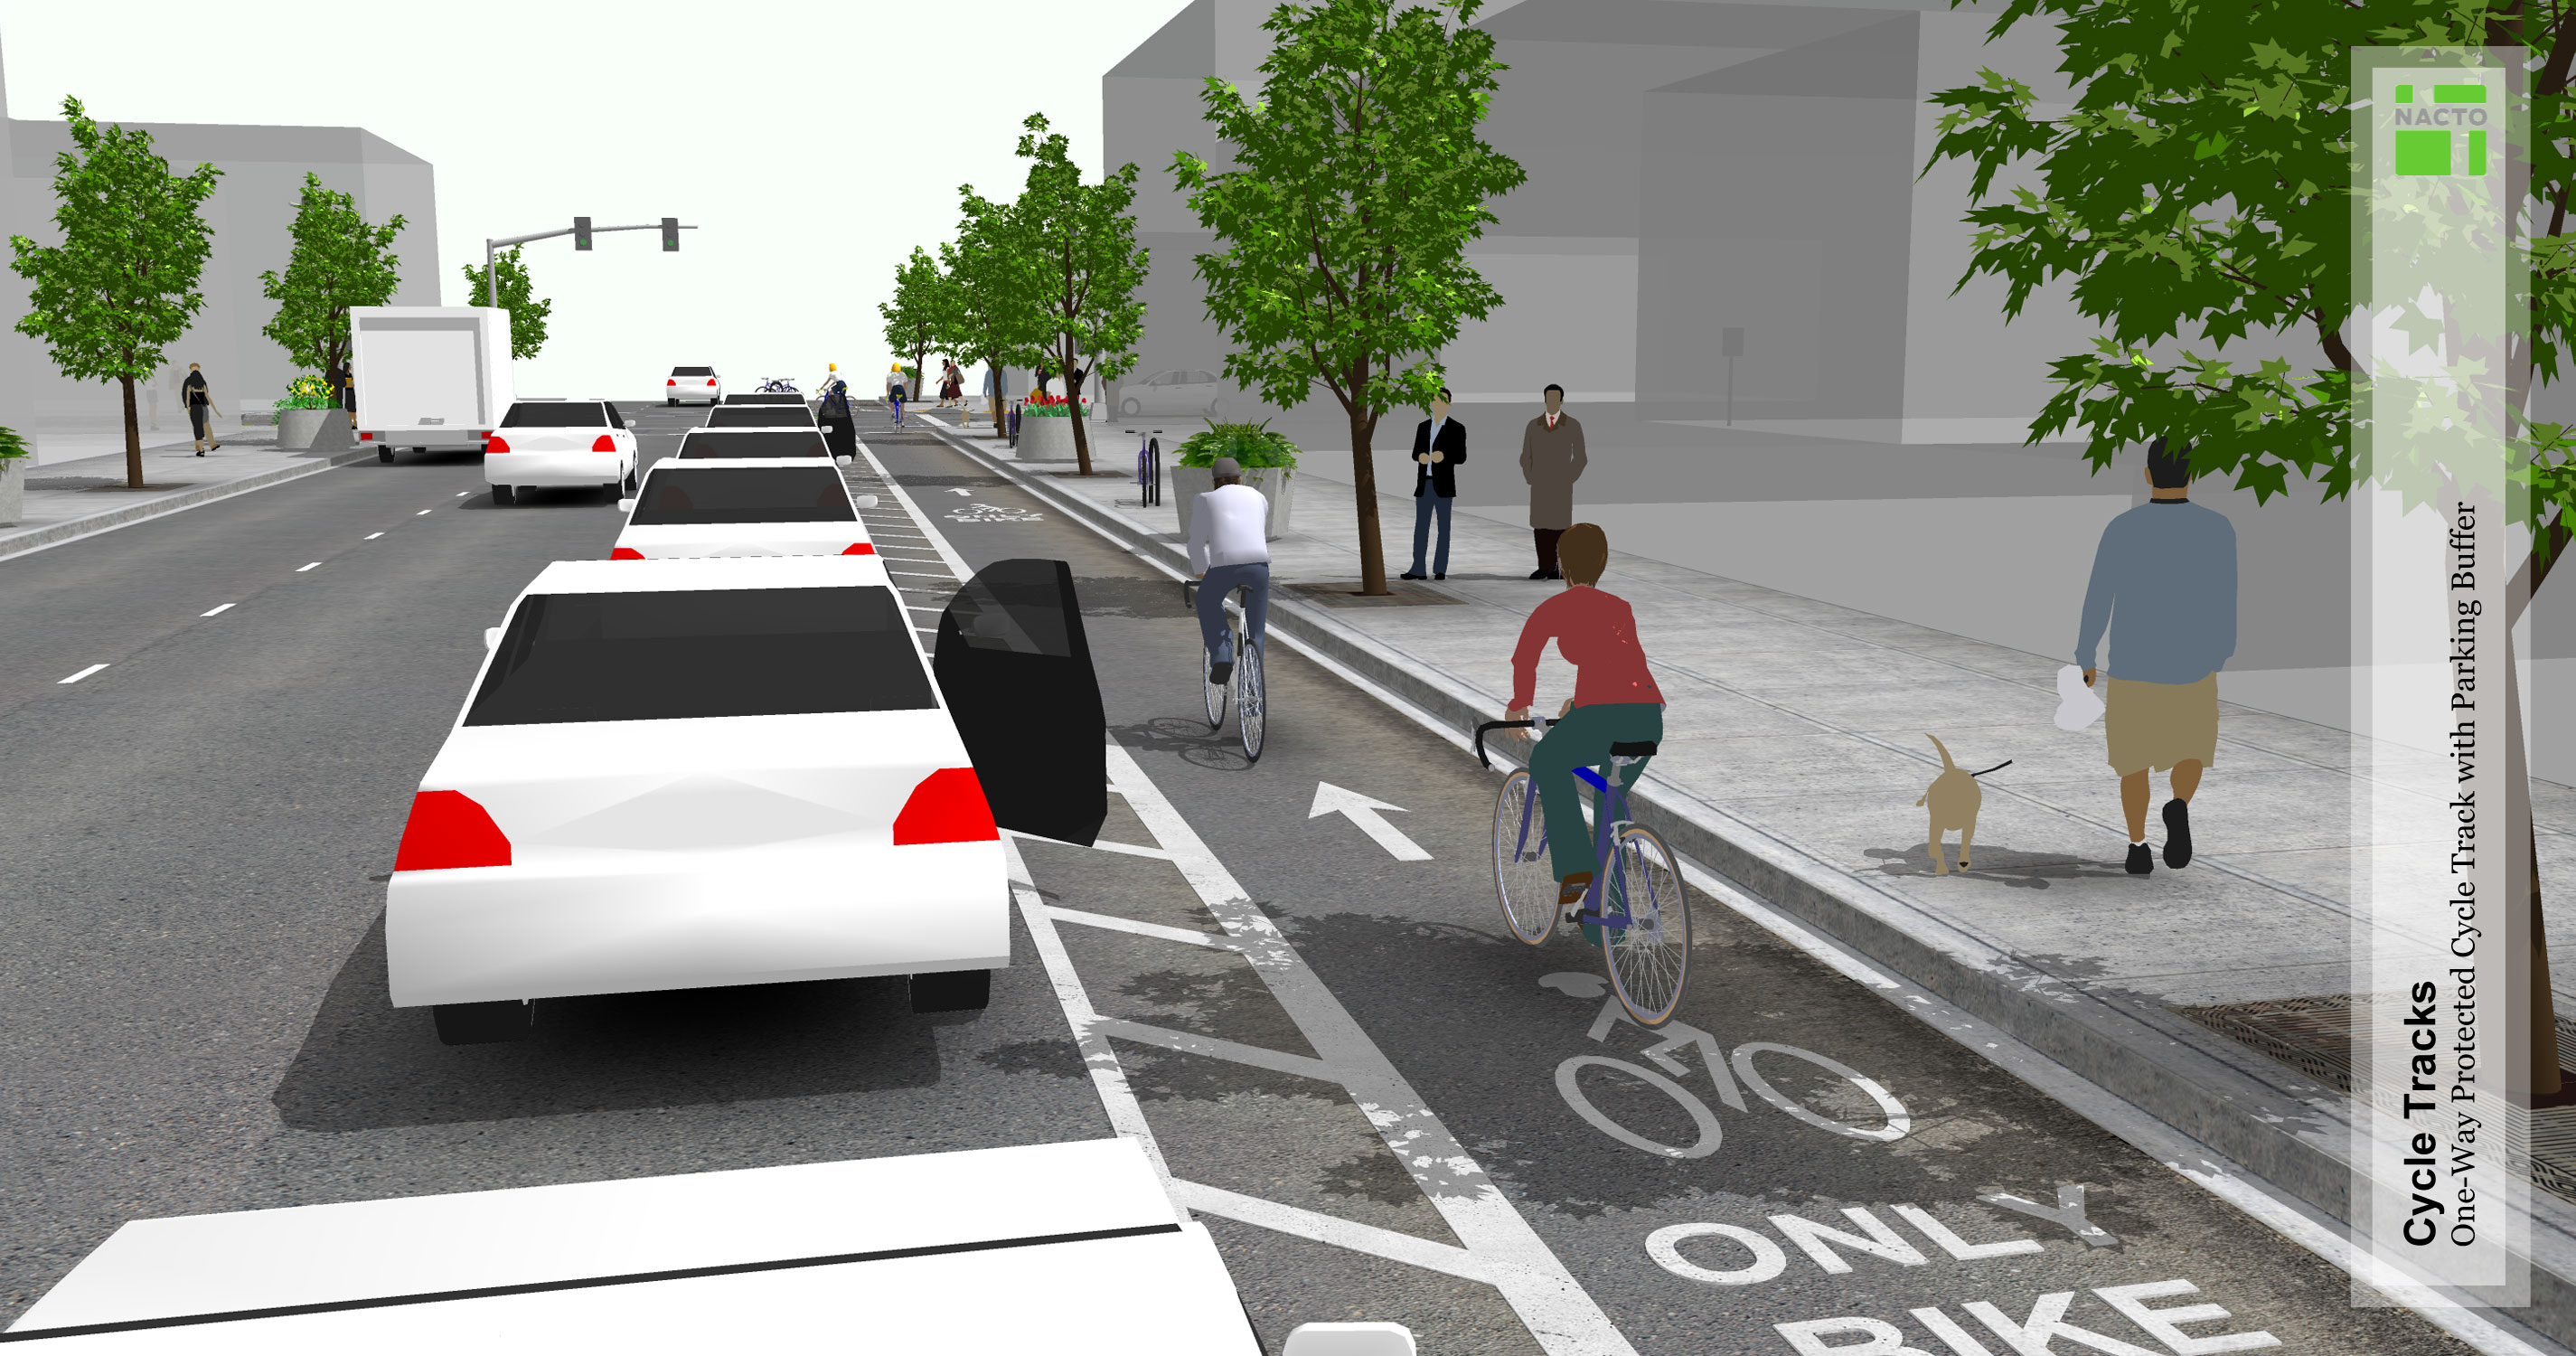 City Proposes Parking Protected Bike Lanes For Gateway